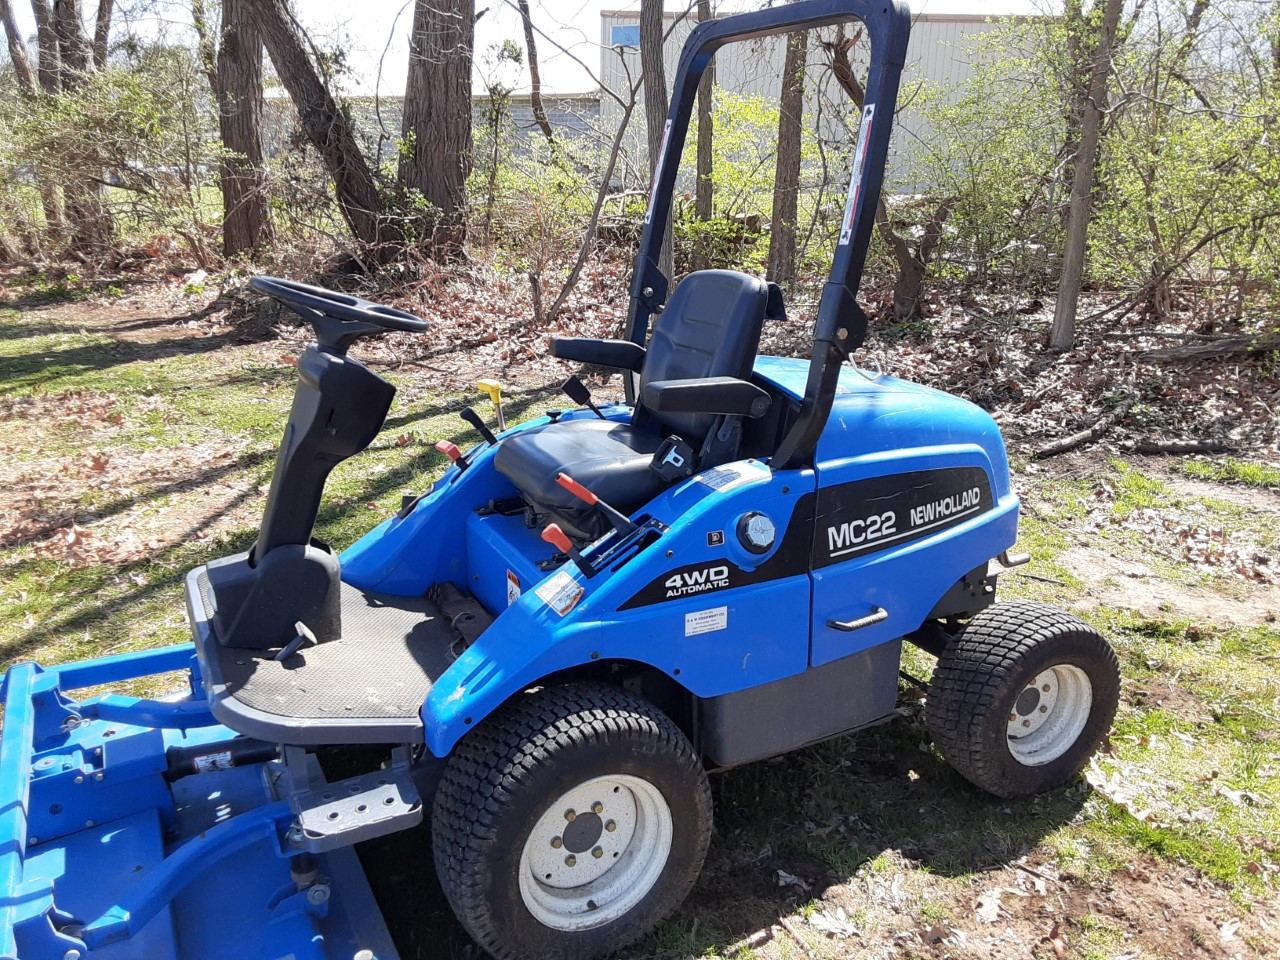 Used NEW HOLLAND MC22 $4,900.00